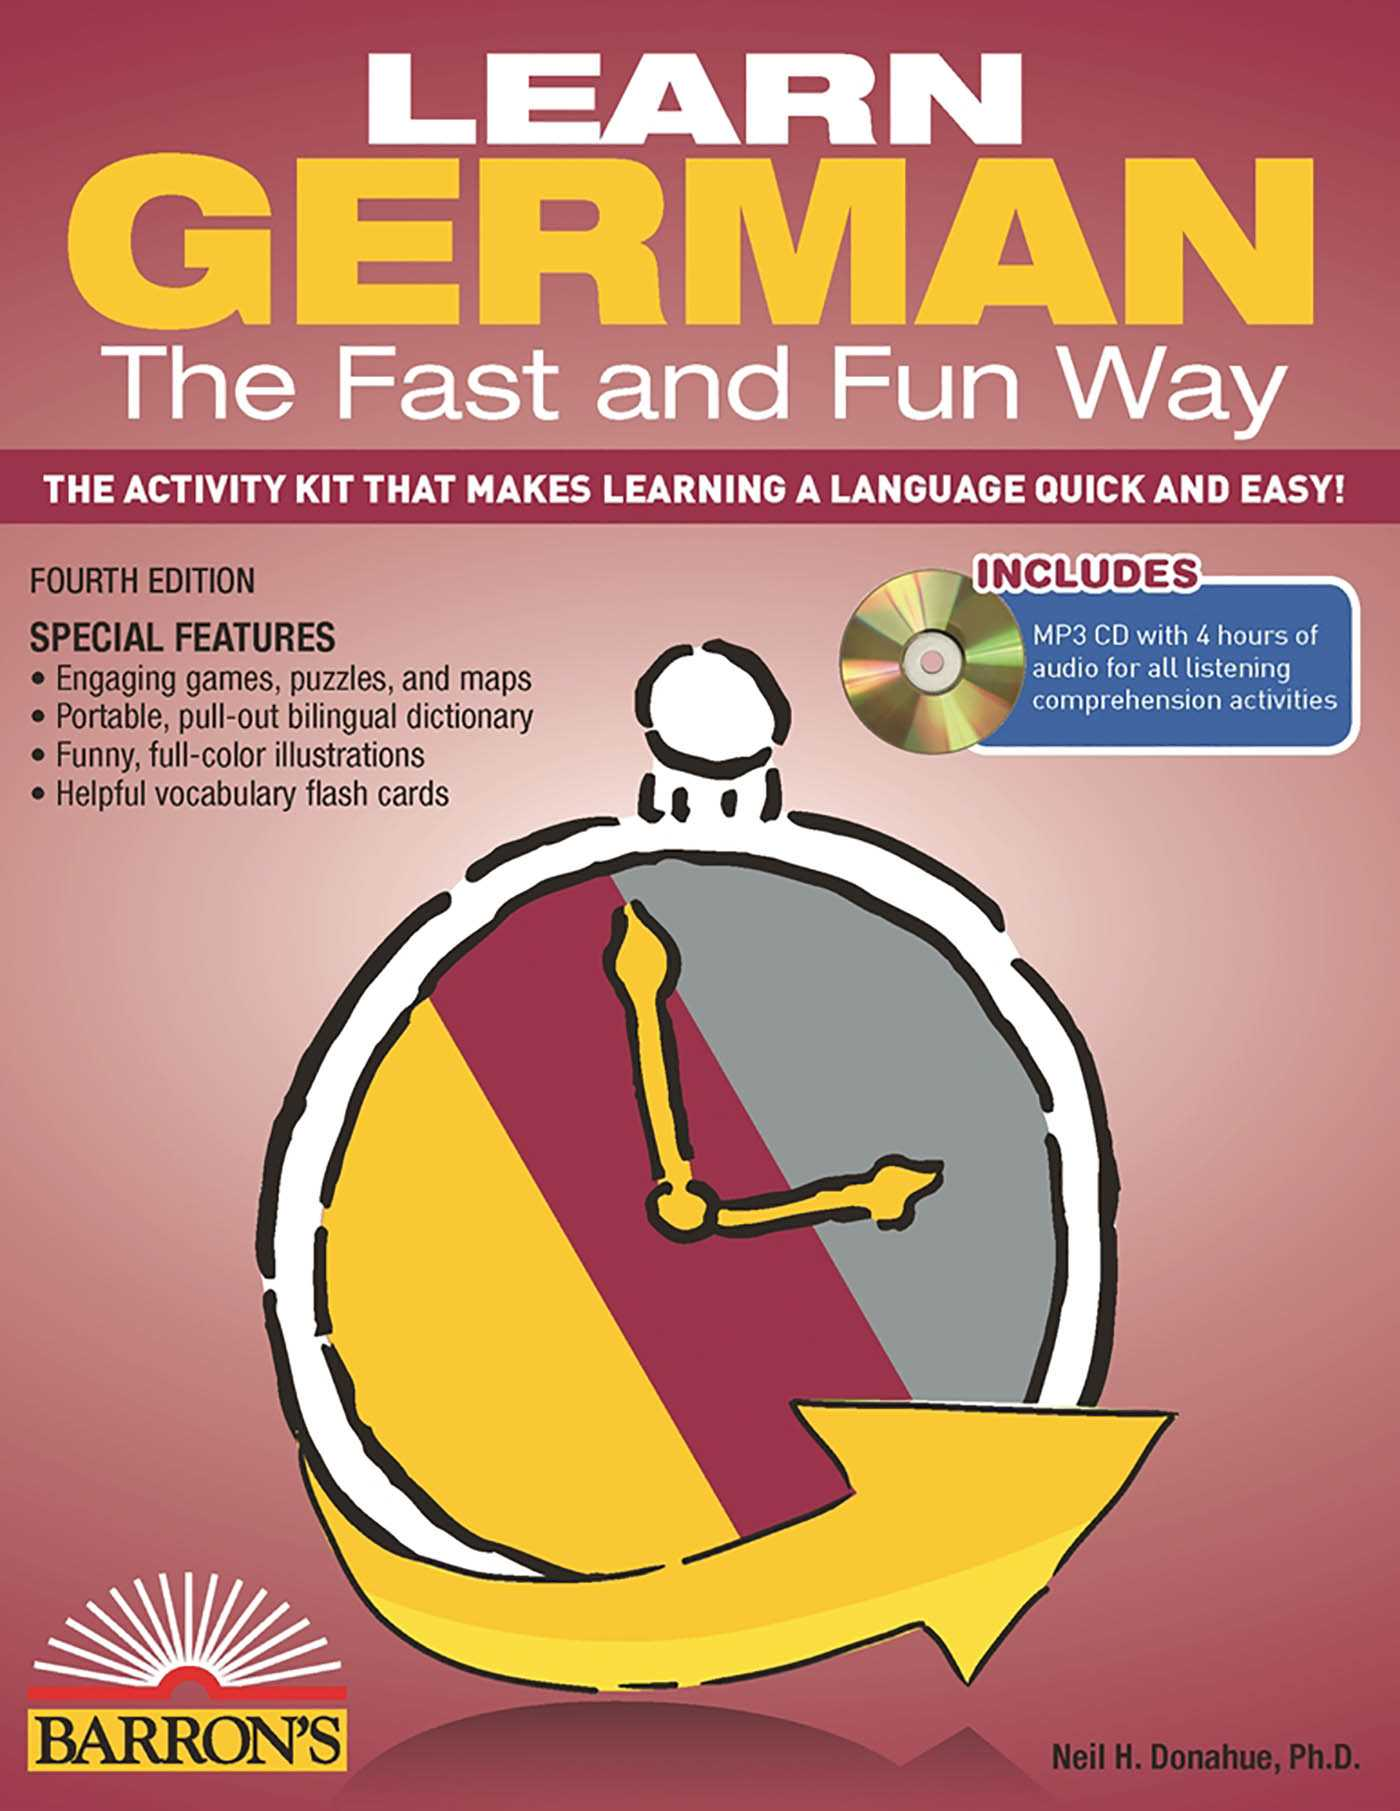 Fast In German >> Learn German The Fast And Fun Way With Mp3 Cd Book By Neil H